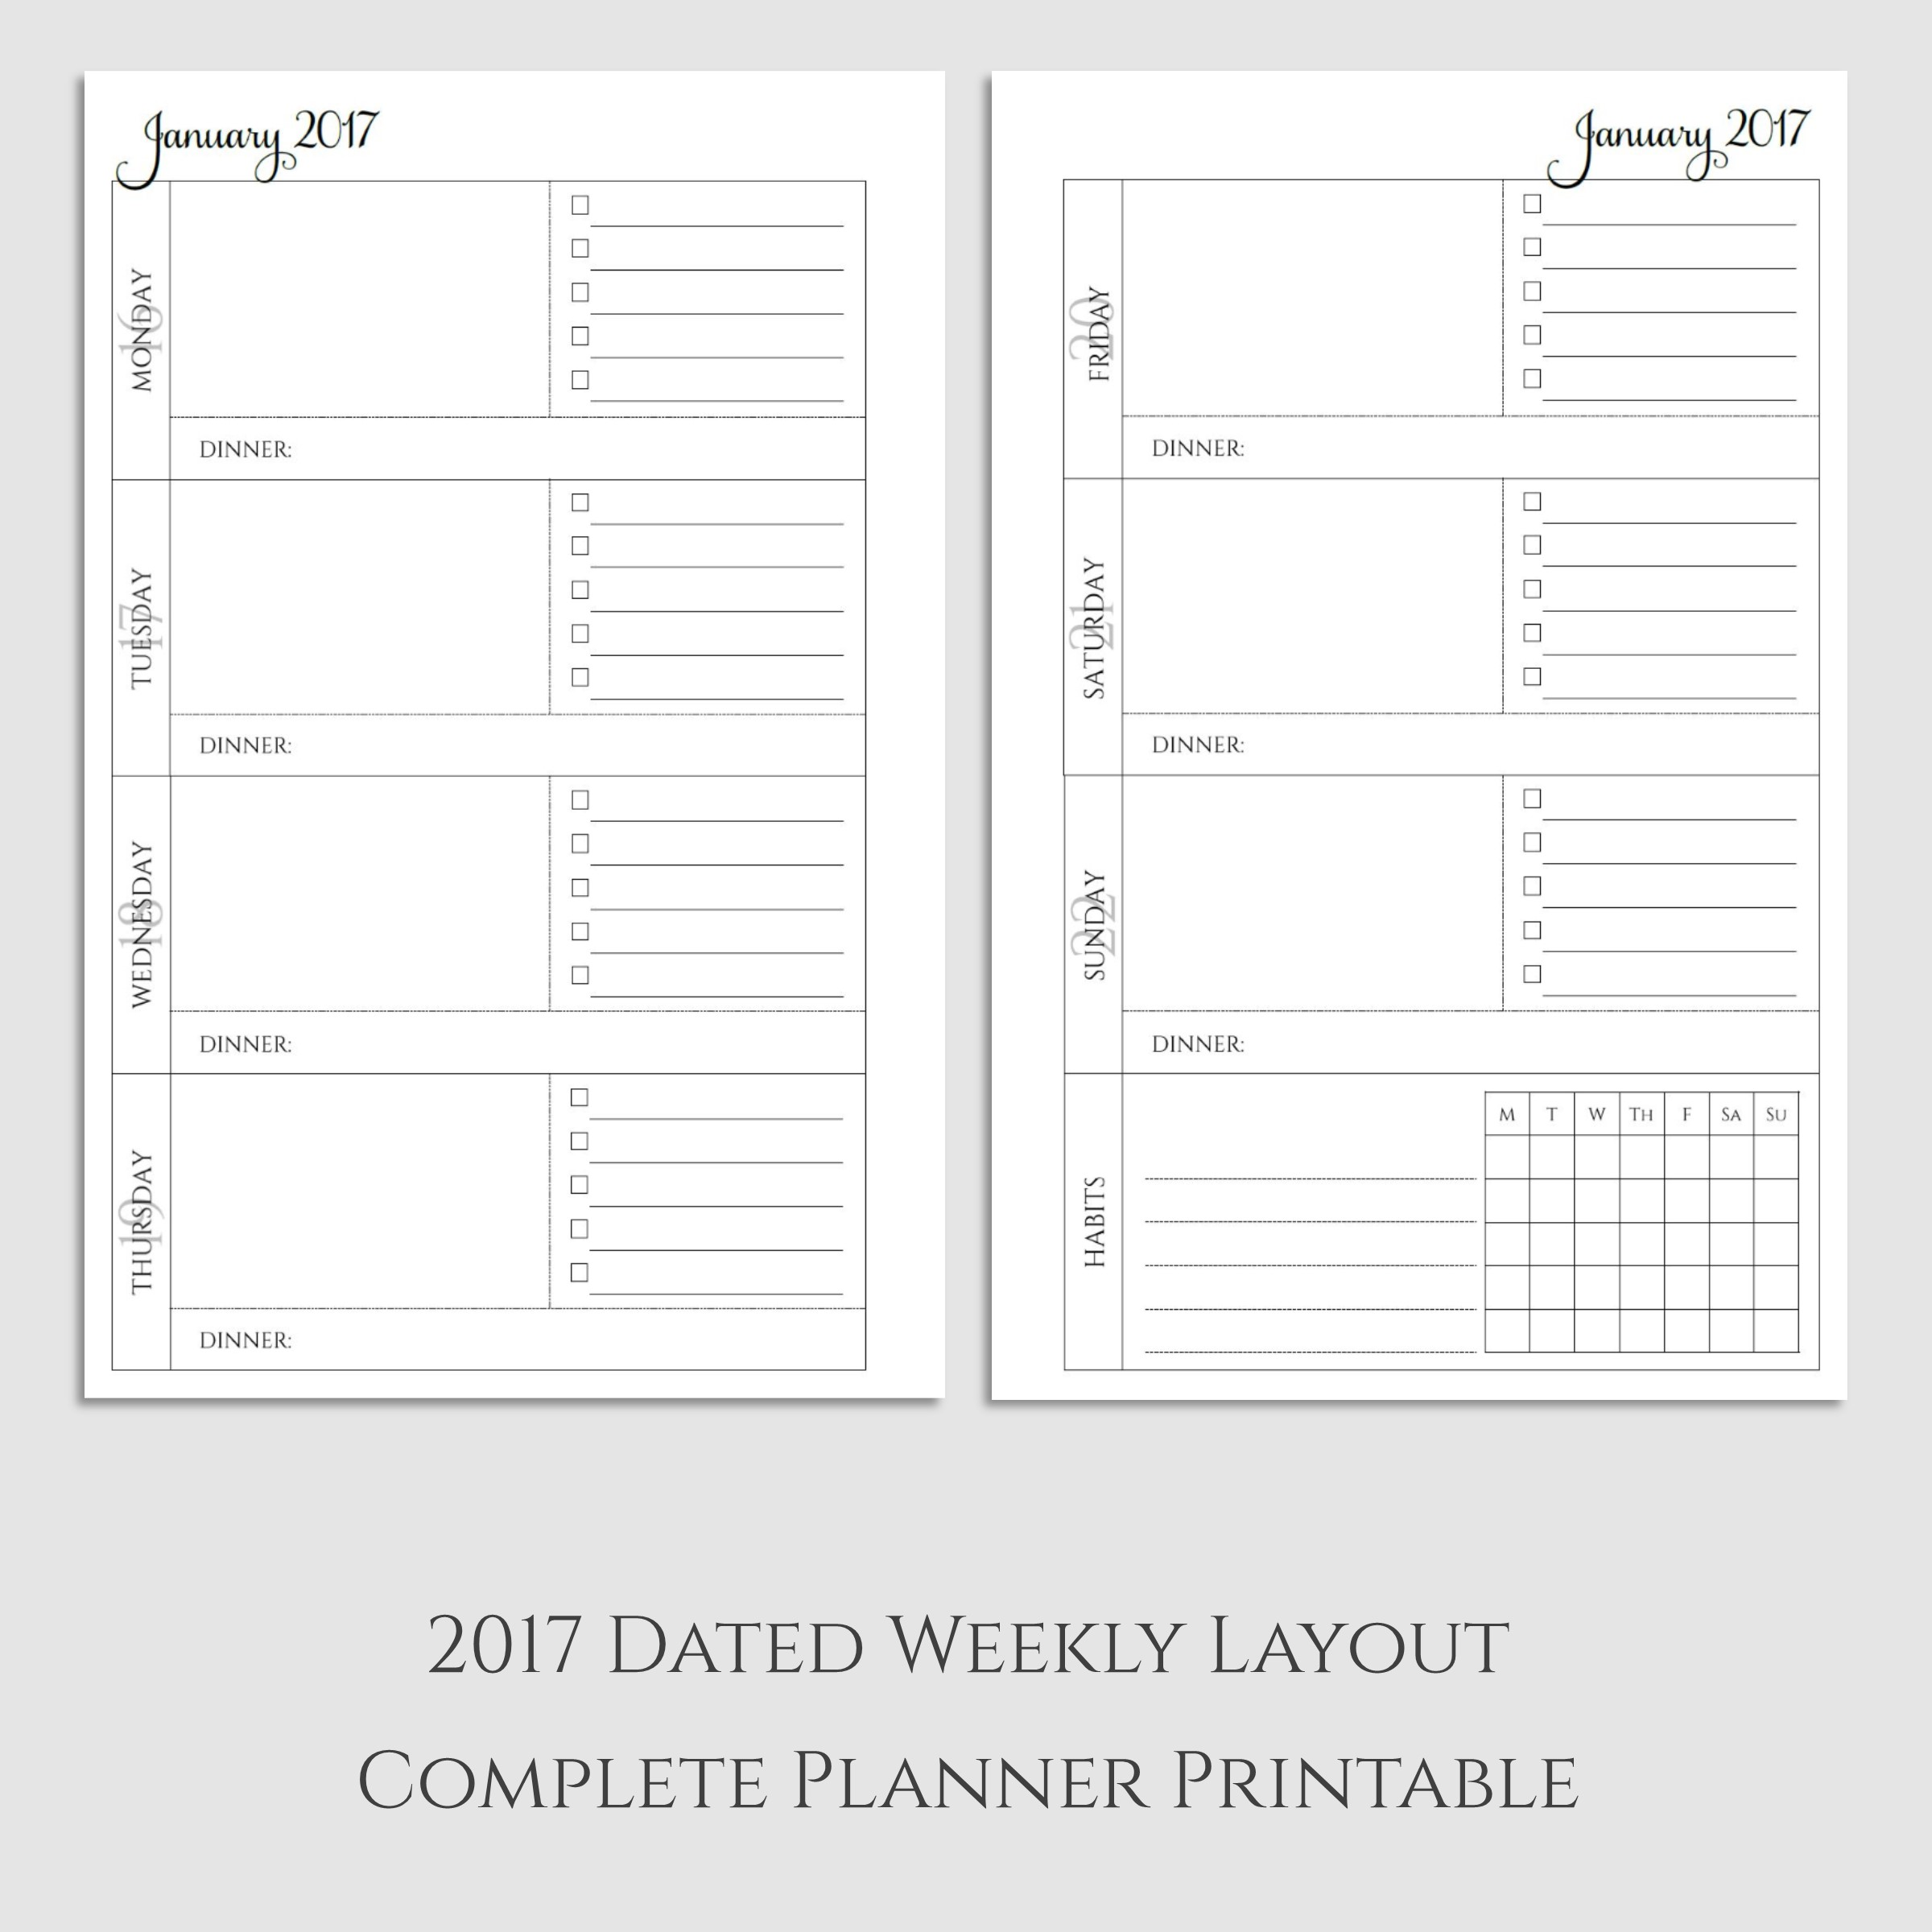 Complete Weekly Planner Printable With Dinner Amp Habit